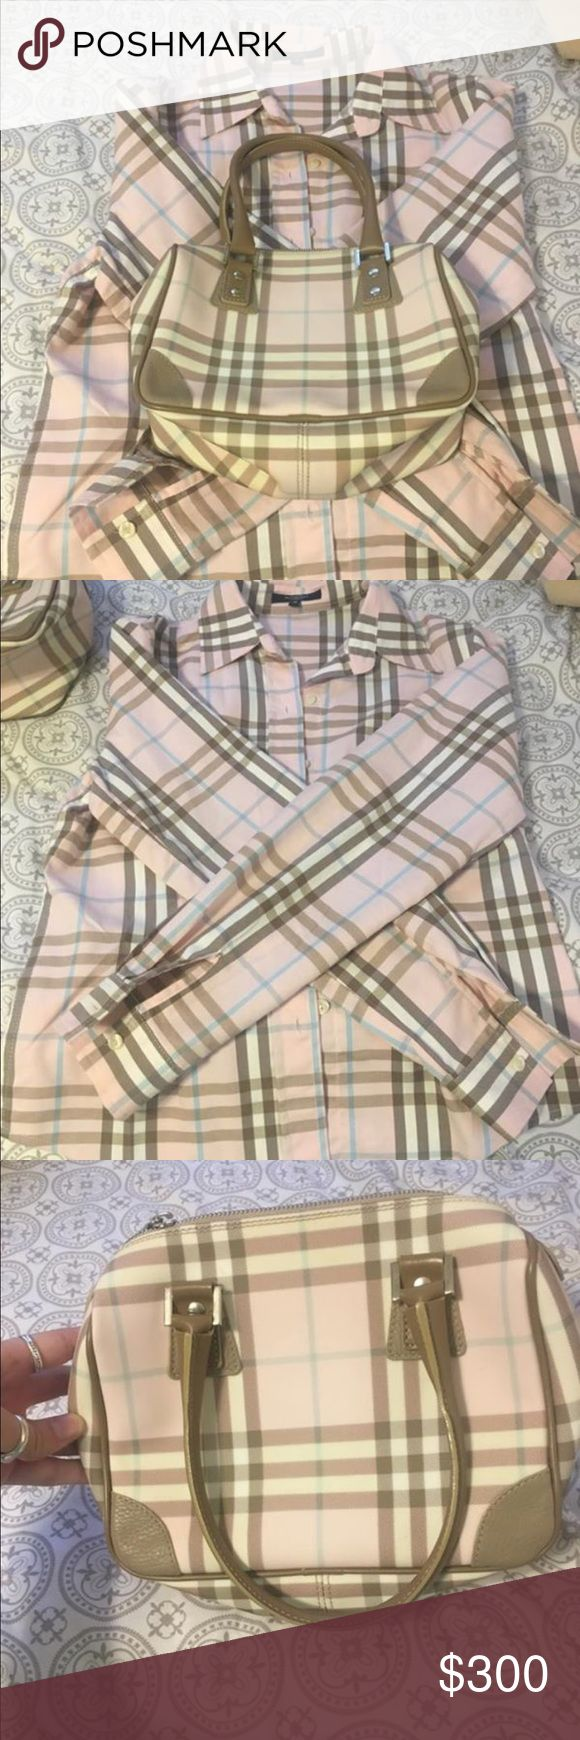 AUTH. BURBERRY PURSE & SHIRT AUTHENTIC BURBERRY PURSE & SHIRT. The shirt is a size medium. Perfect condition. Only worn and carried a few times. Will sell separately. Bought both at the Burberry store in San Marcos Texas. No smudges, rips, tears or stains on either. DUST BAG INCLUDED JUST NOT PICTURED Burberry Bags